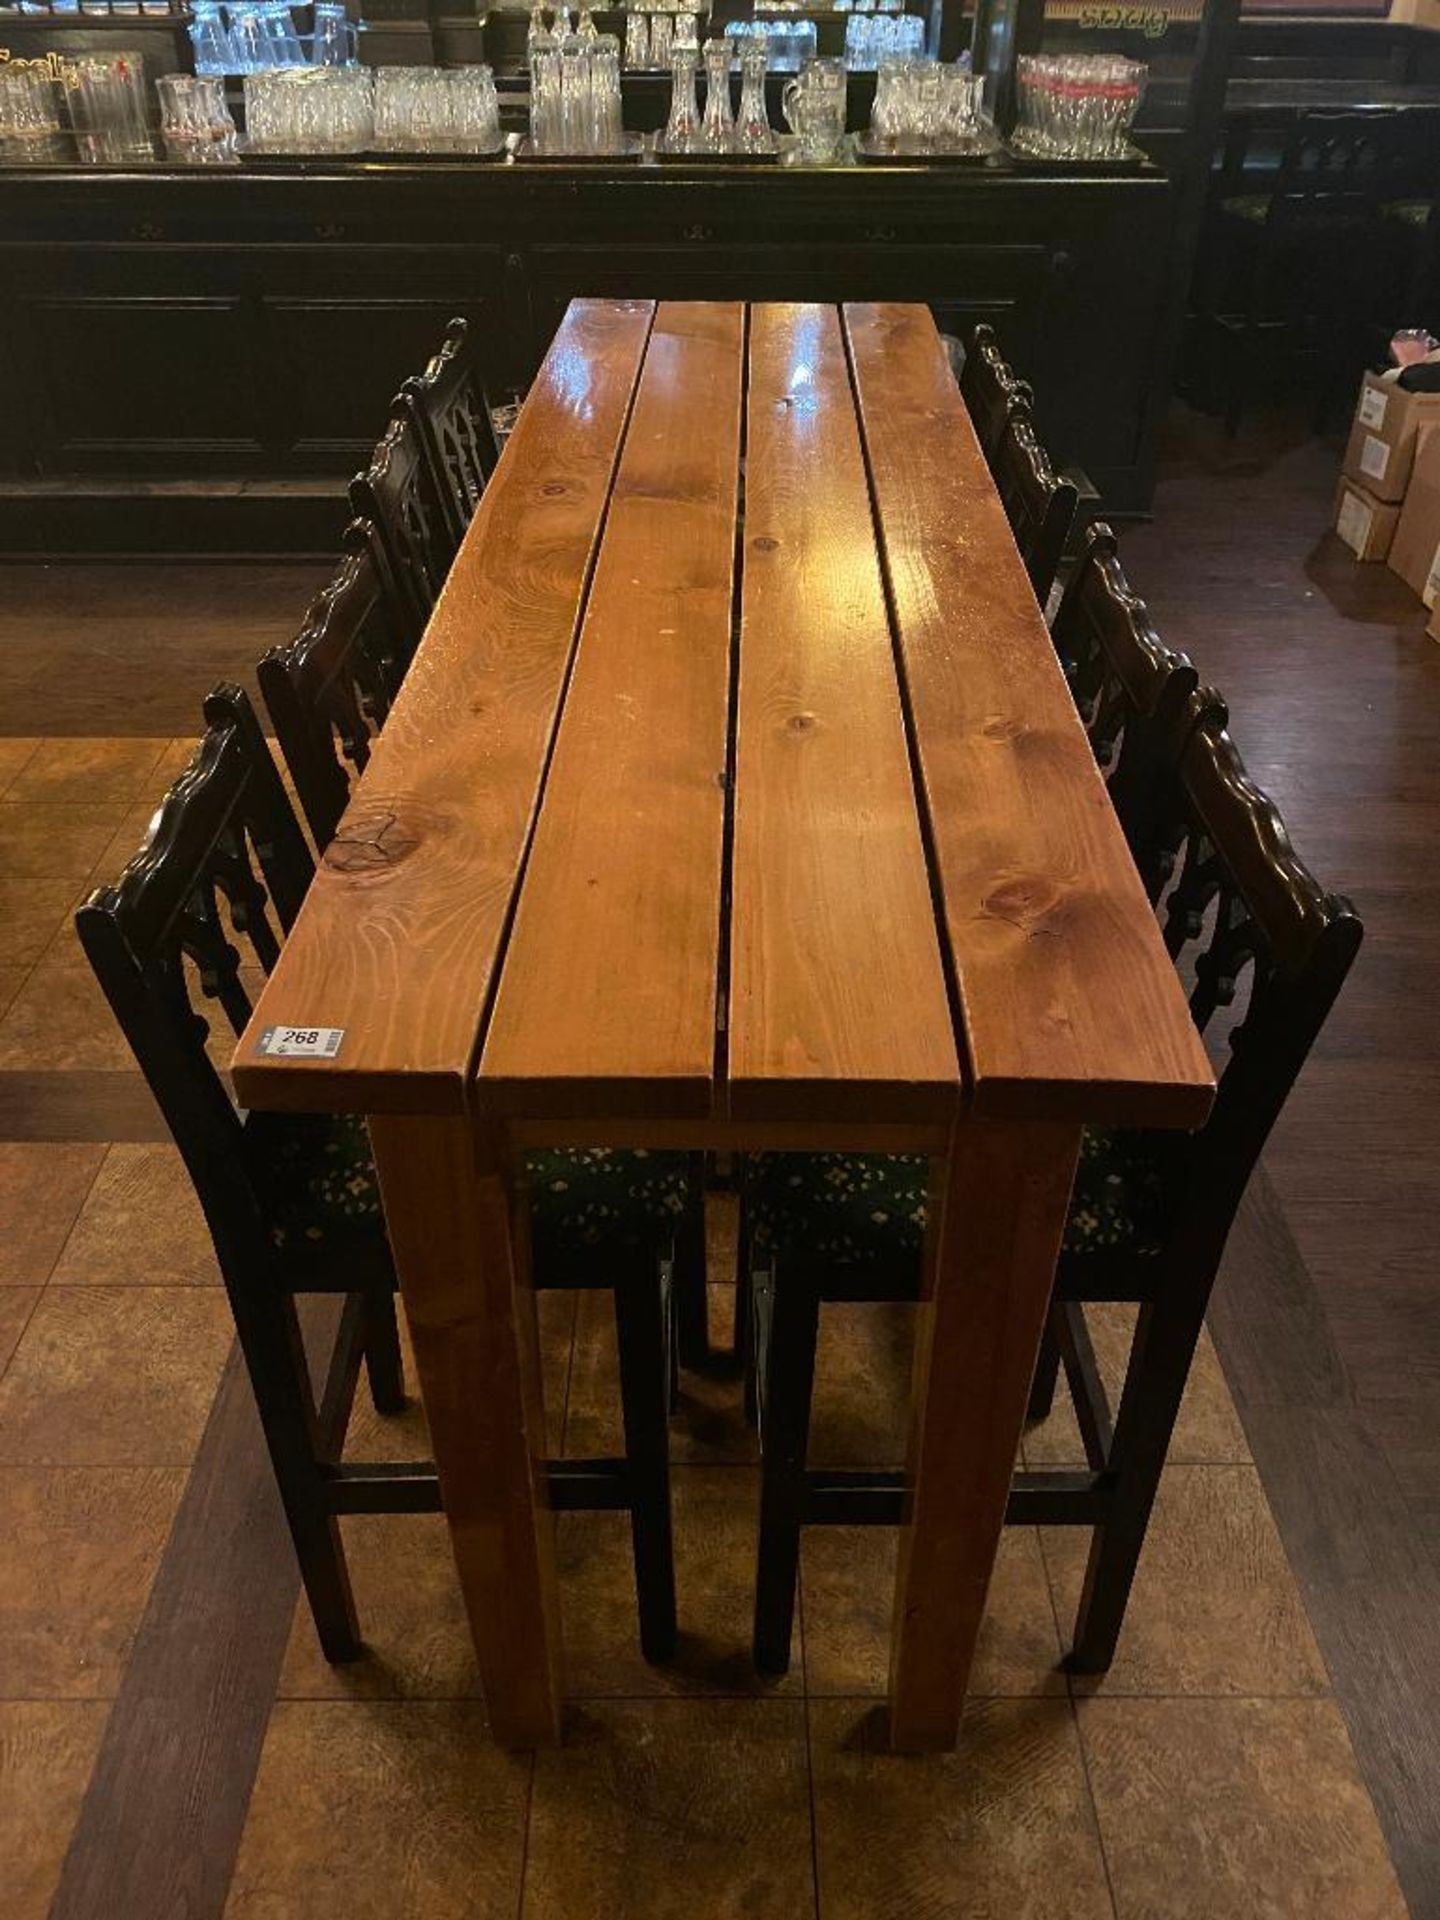 7' WOOD BAR HEIGHT TABLE WITH 8 BAR HEIGHT CHAIRS - Image 3 of 3